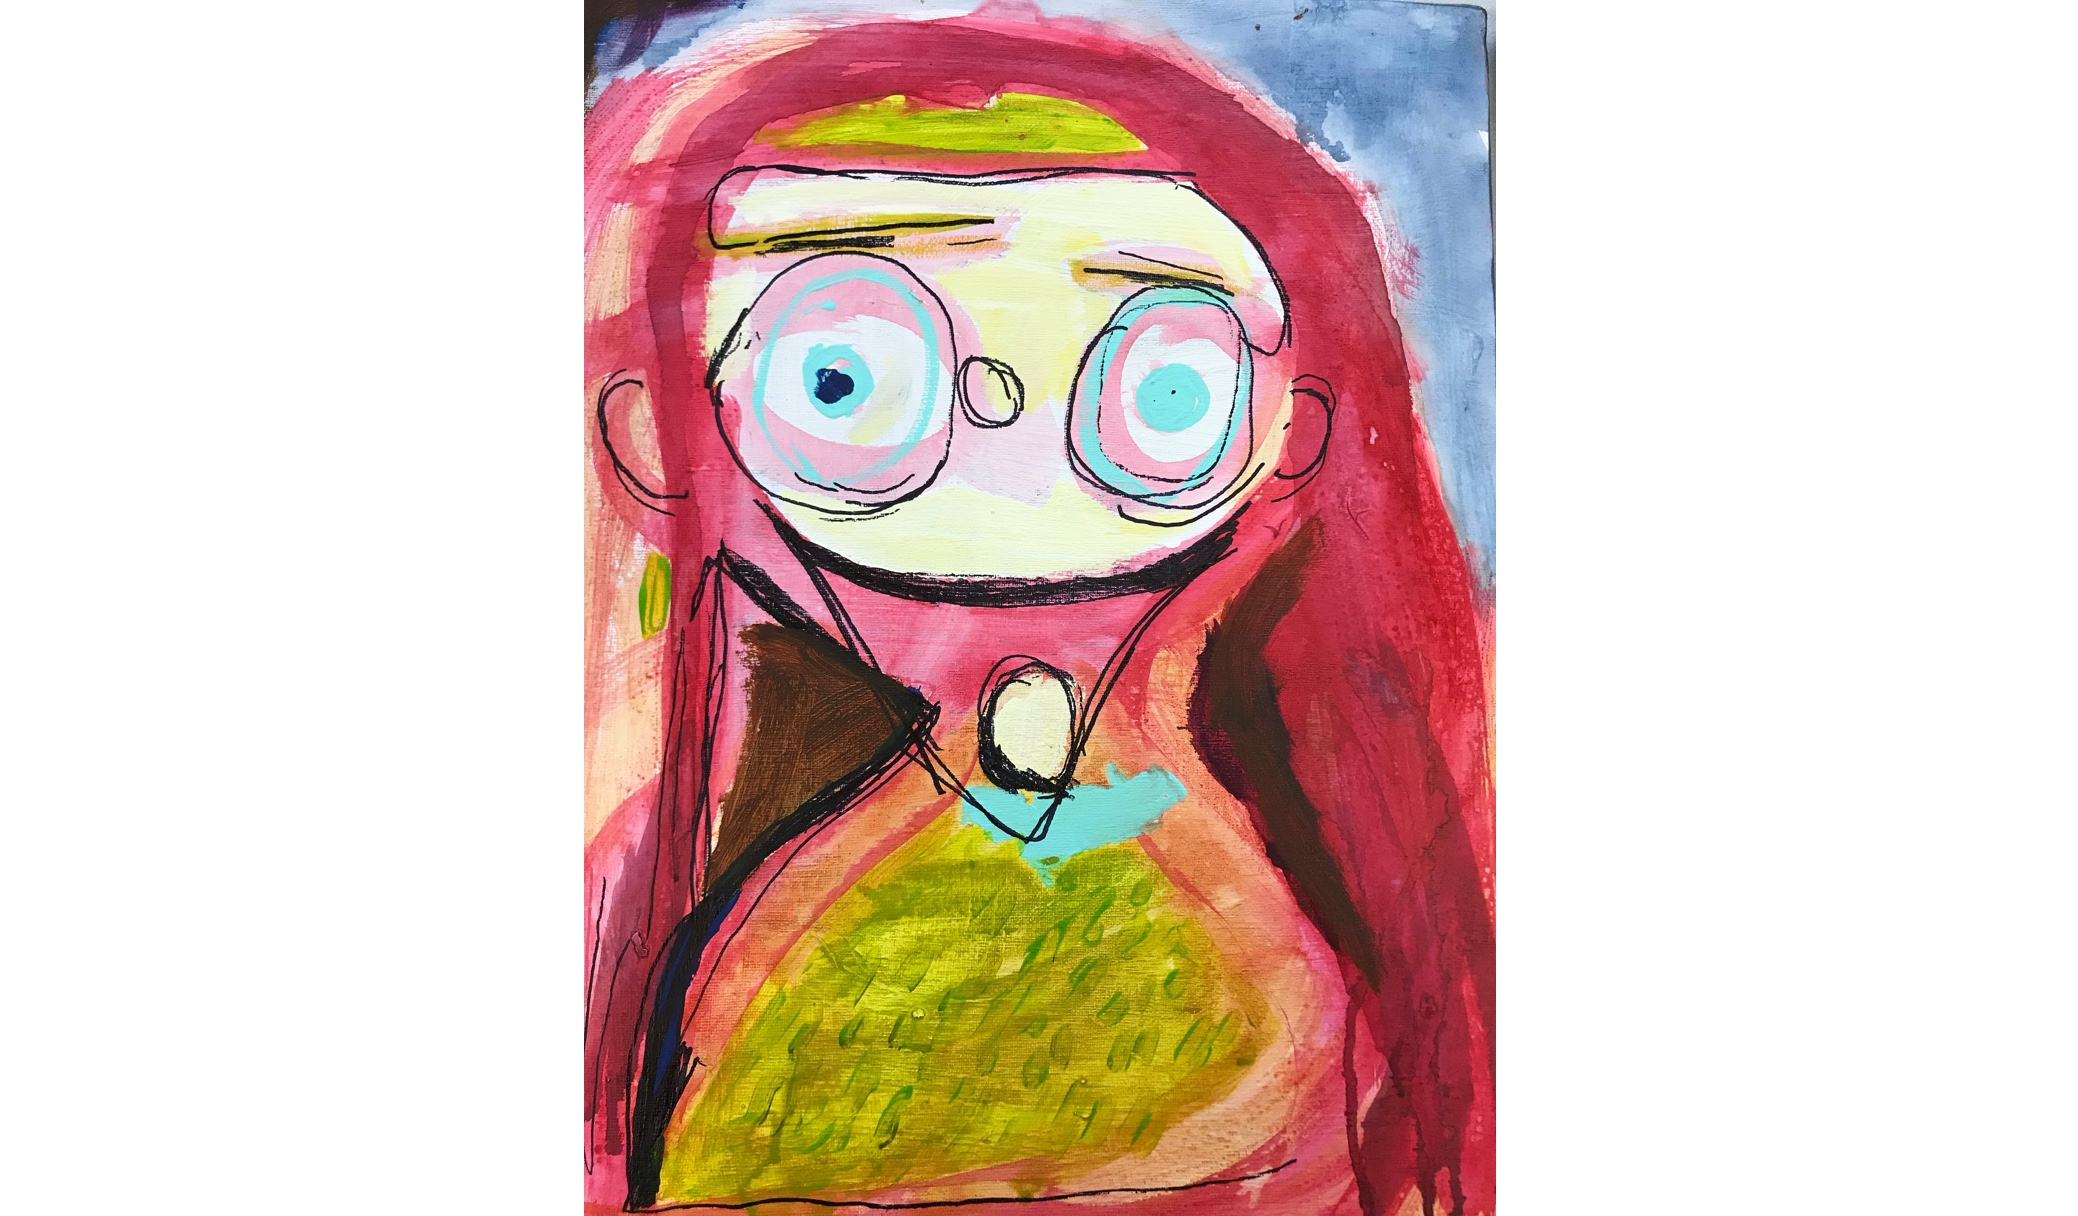 Abstract pink portrait of girl with large eyes and long hair with black lines on blue background.